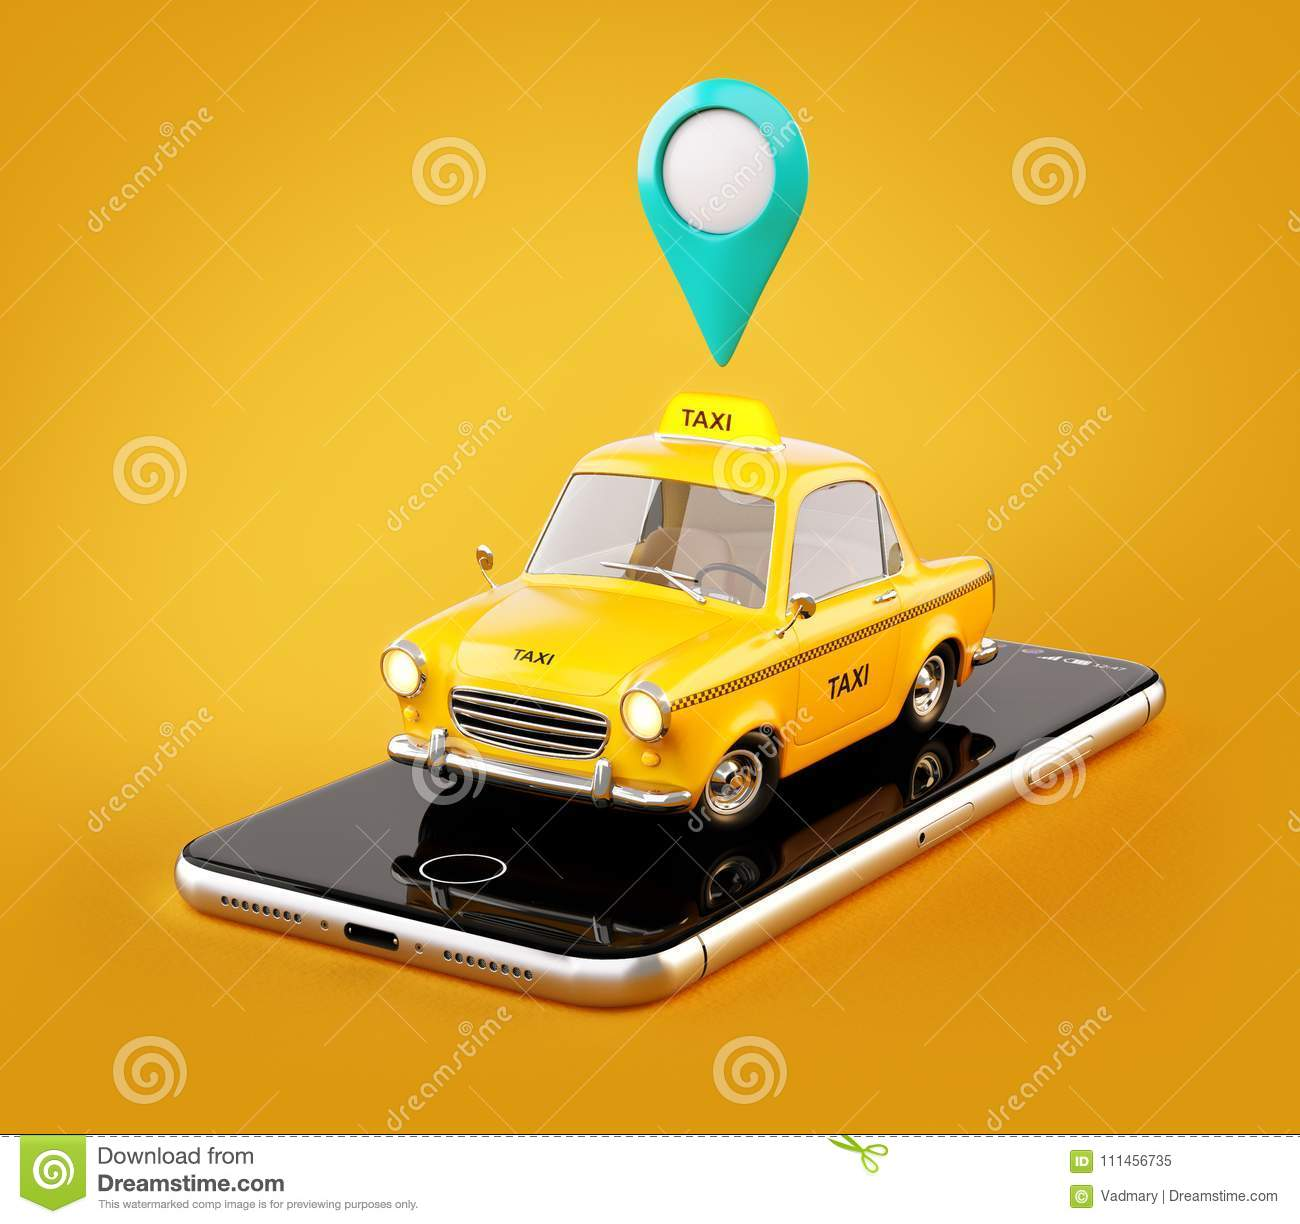 Smartphone application of taxi service for online searching calling and booking a cab.